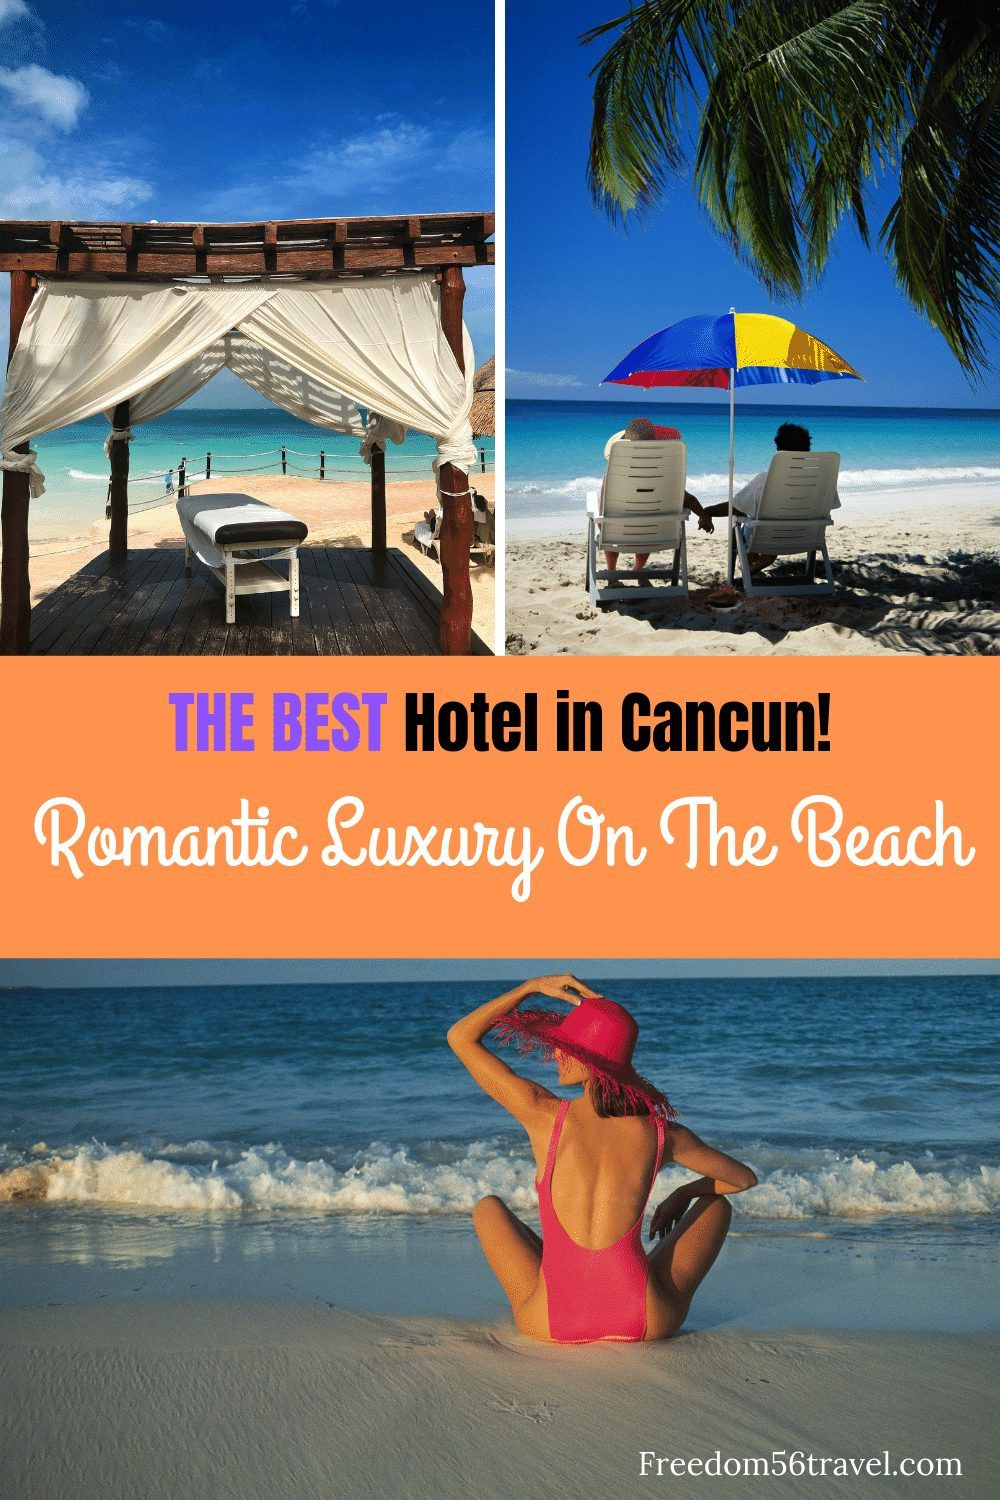 Where To Stay In Cancun A Perfect Couples Vacation Freedom56travel Cancun Hotels Best Hotels Hotels And Resorts